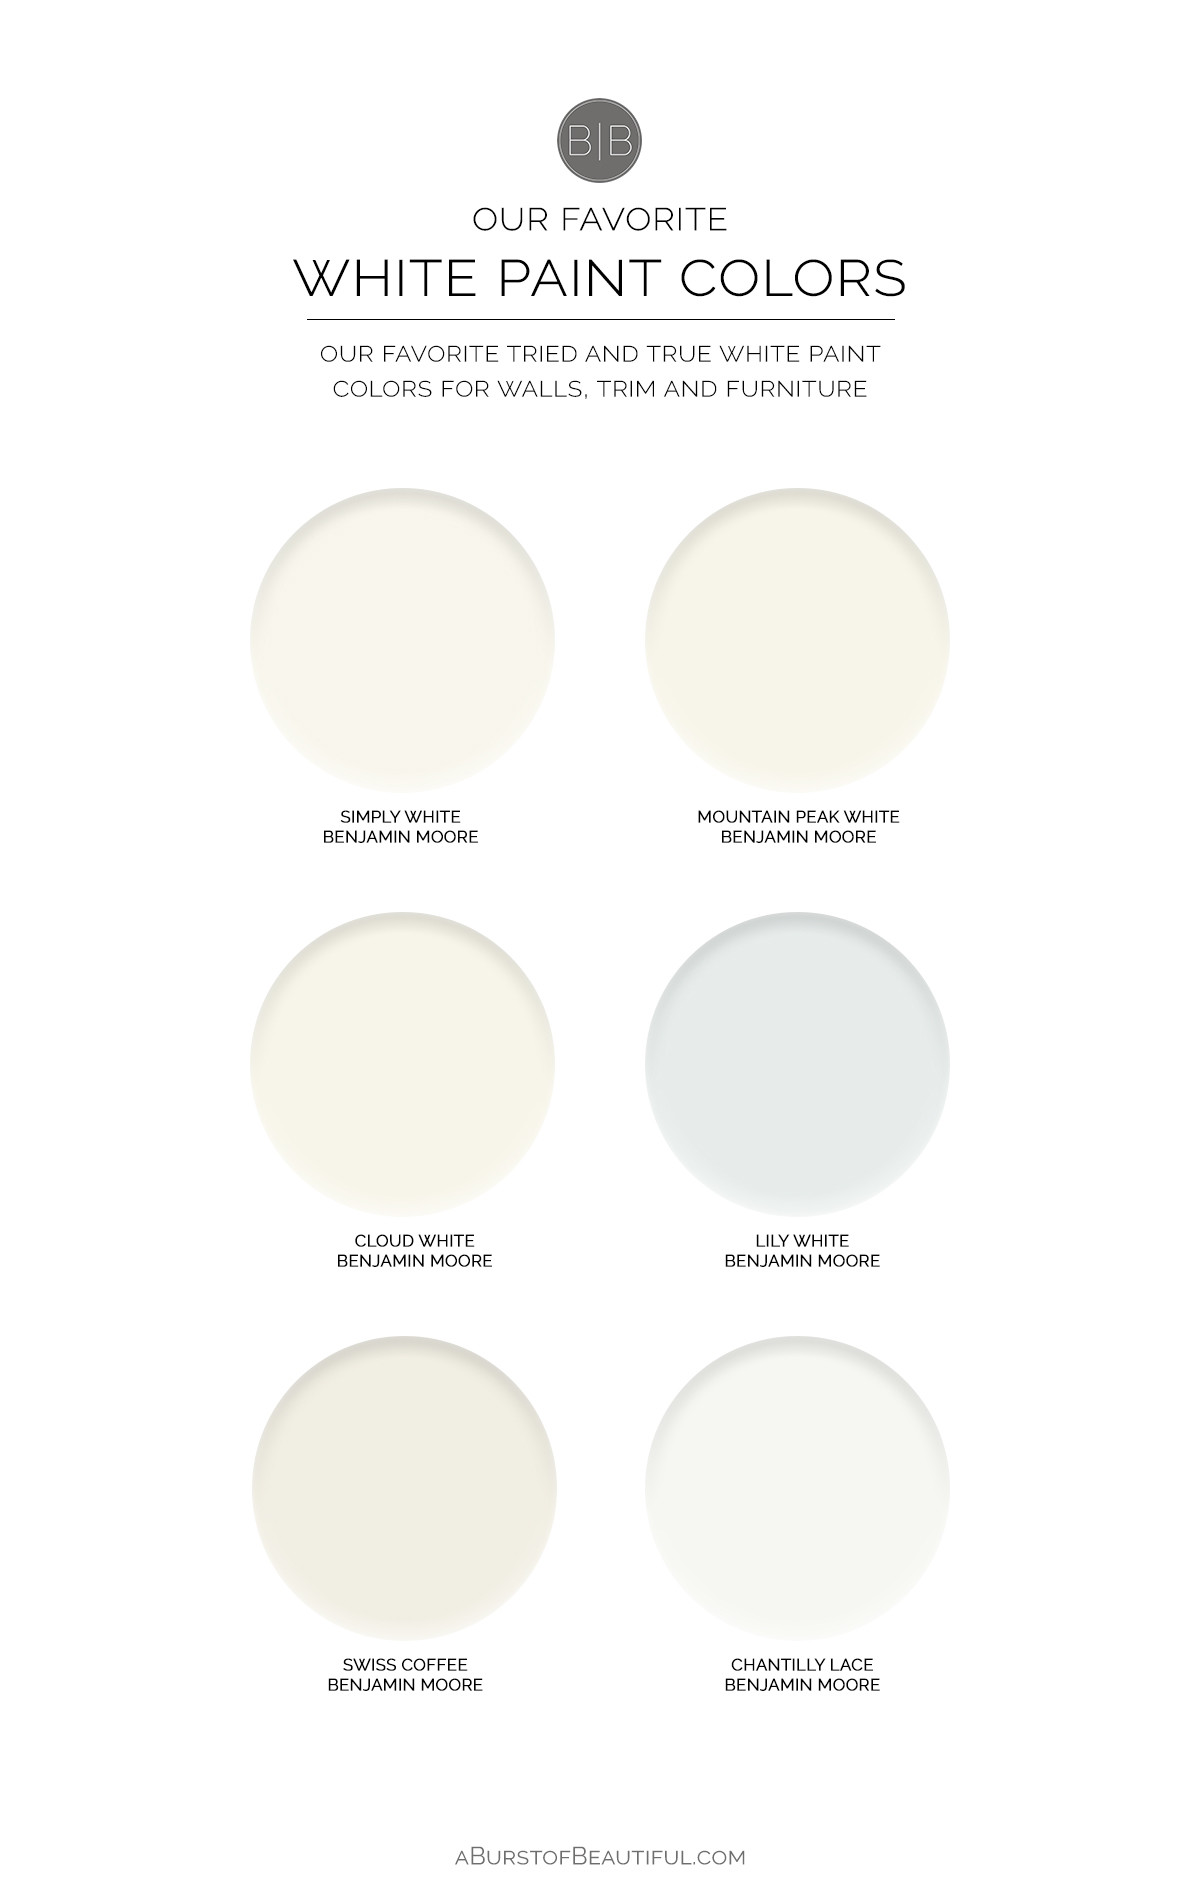 Best ideas about White Paint Colors . Save or Pin The Best White Paint Colors A Burst of Beautiful Now.